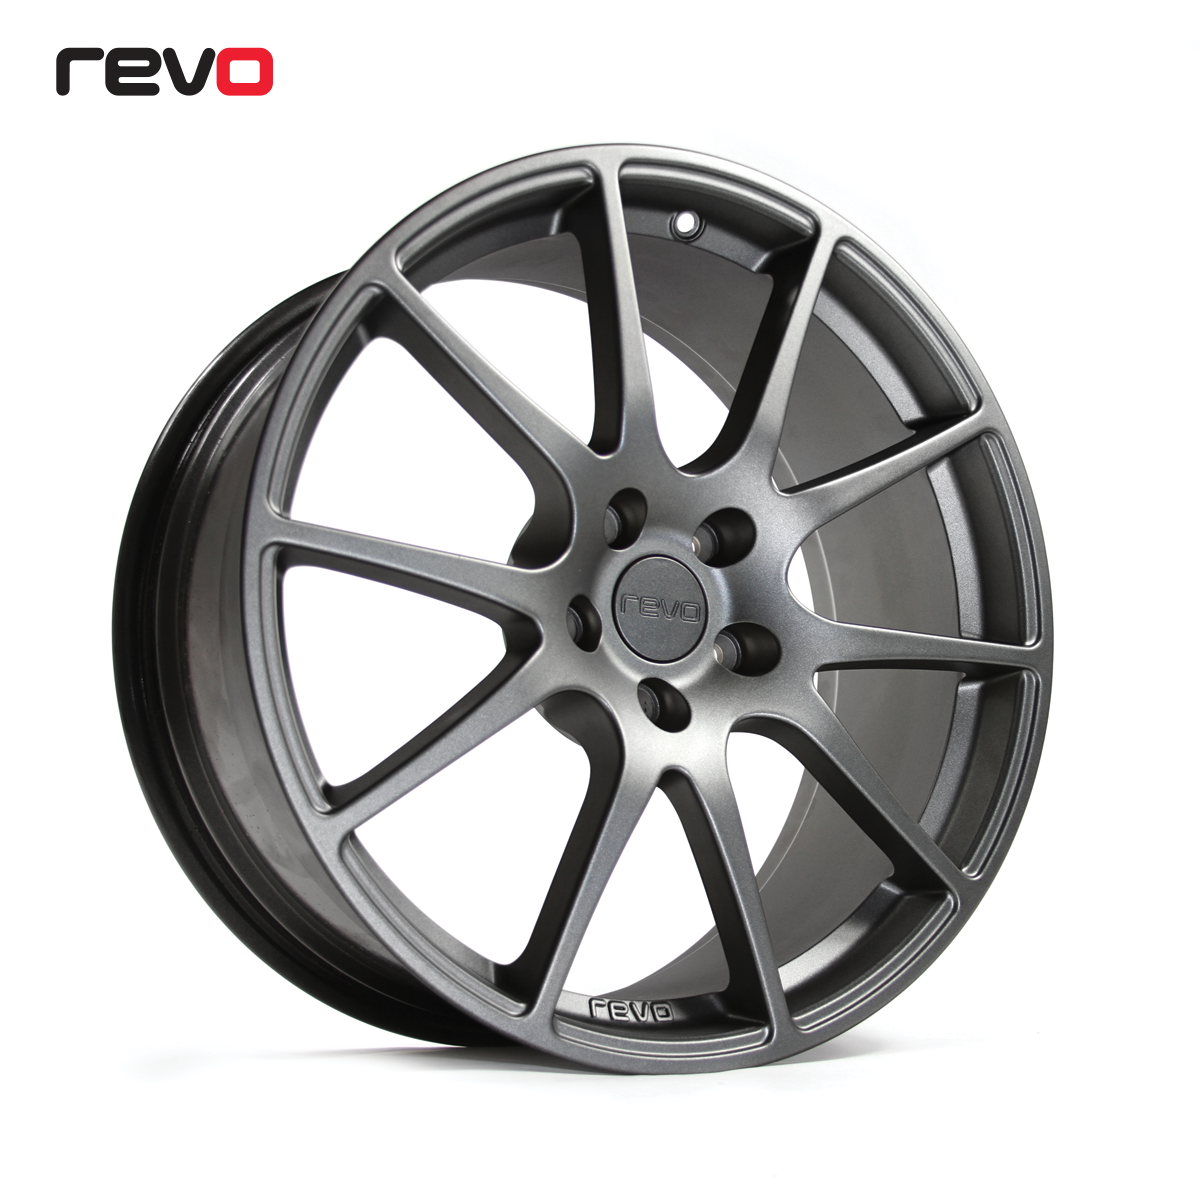 Revo RV019 Wheelset 19 x 8.5, 5 x 112, ET45, 57.1mm CB